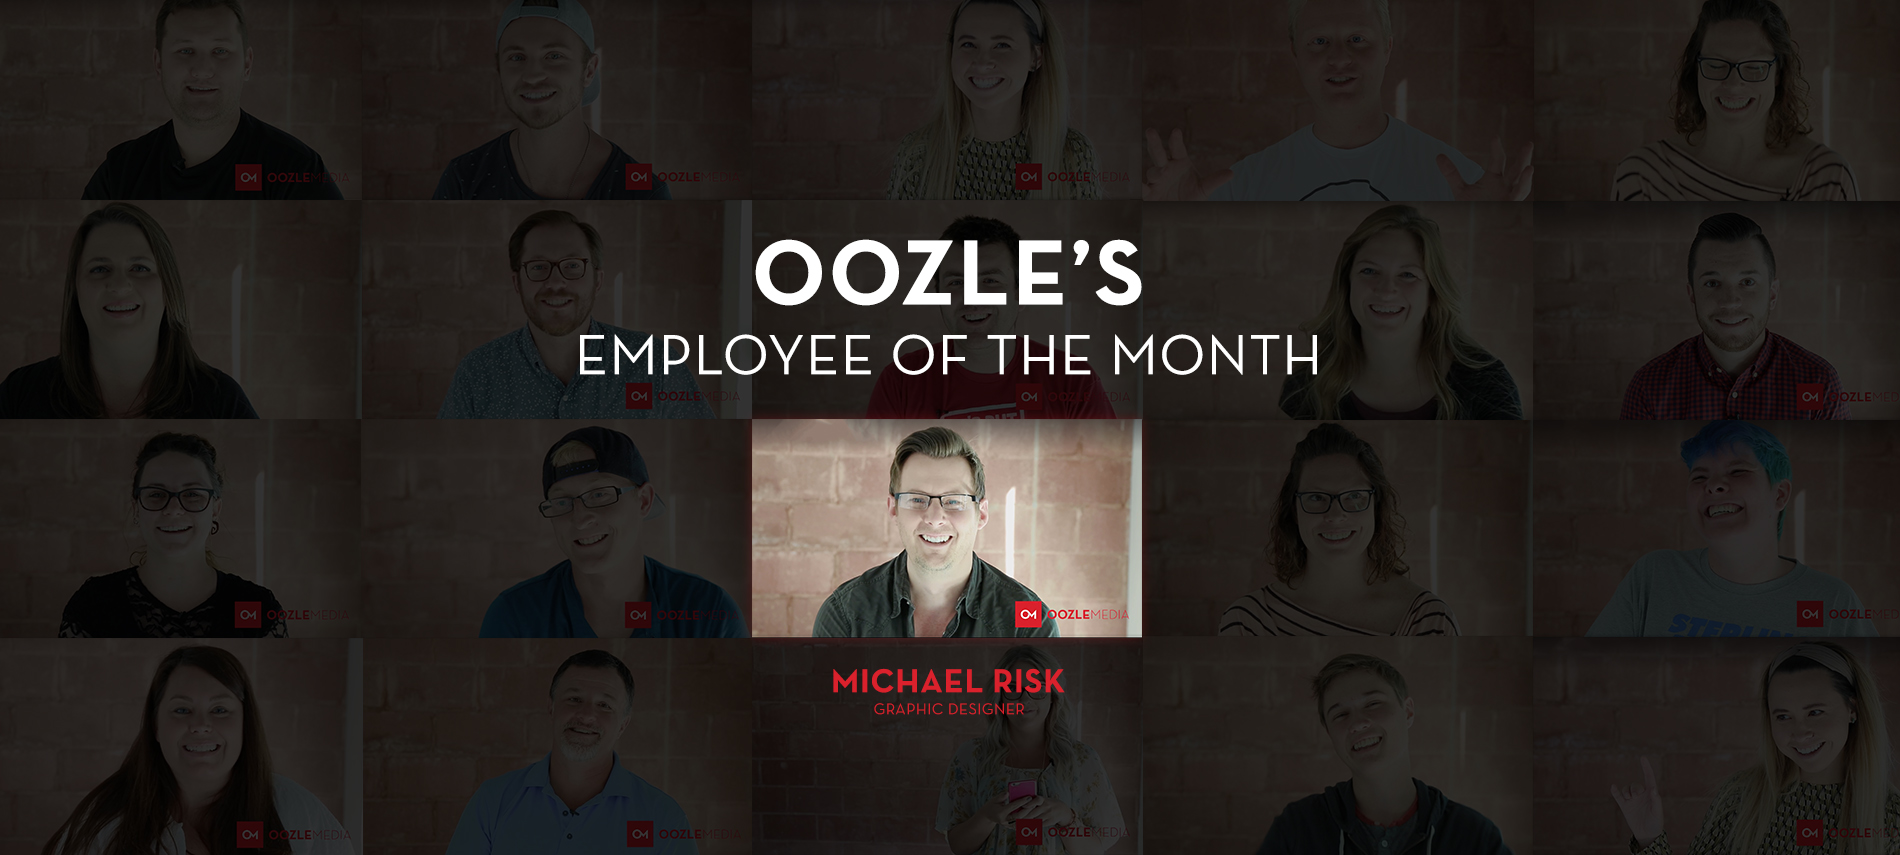 Employee of the Month - michael risk